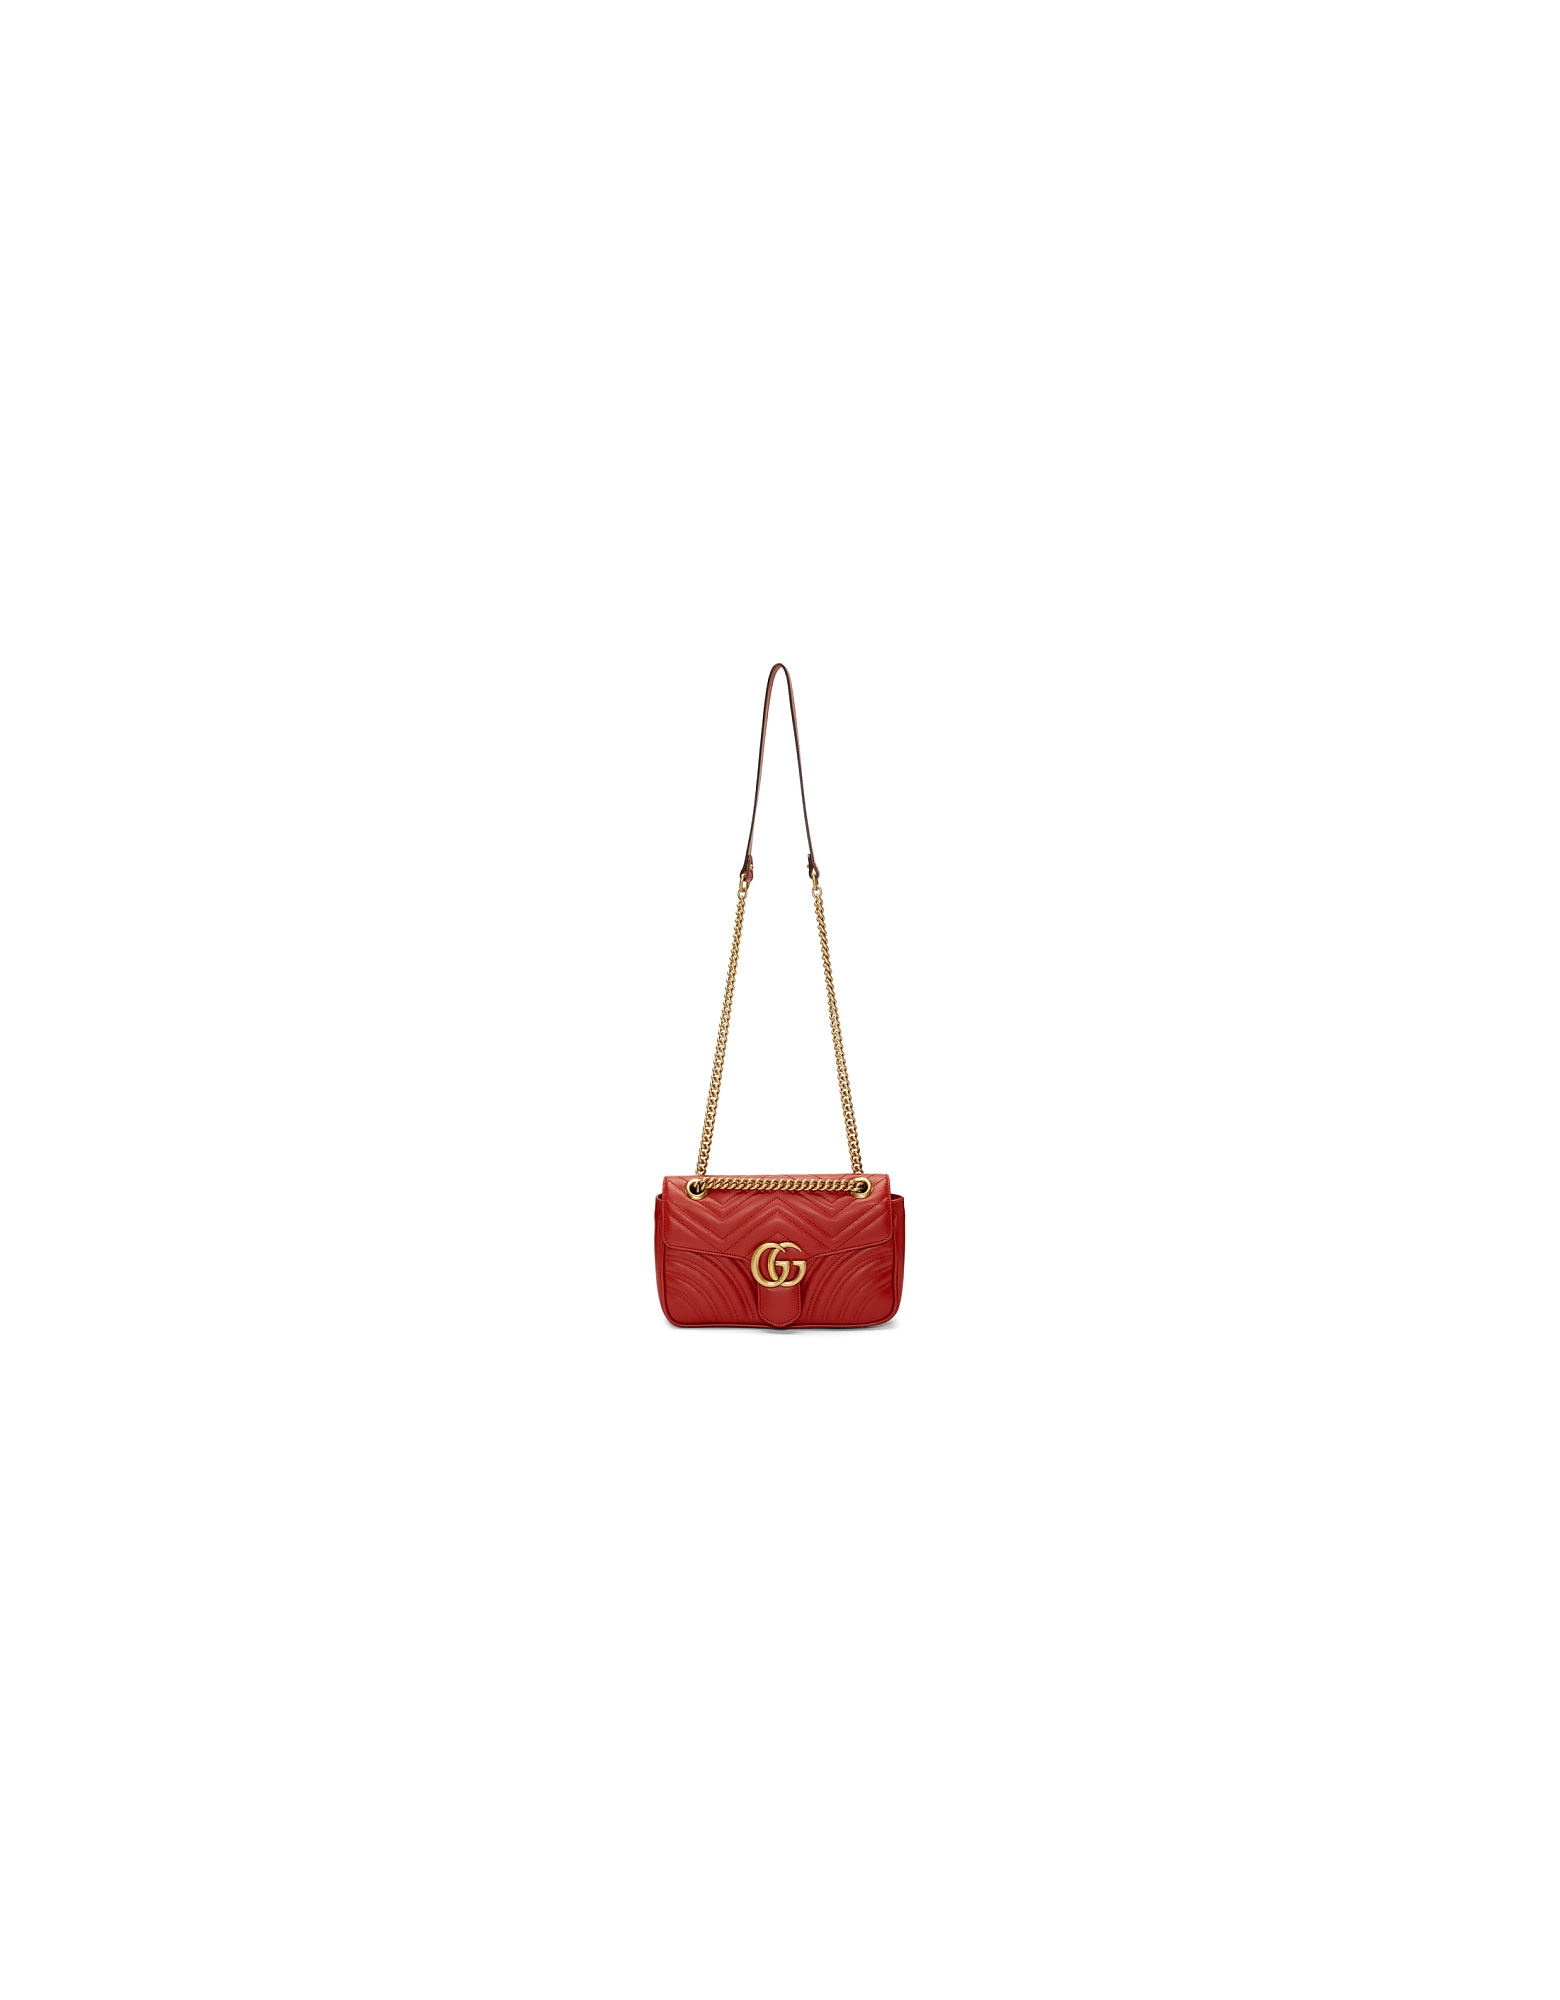 Gucci Designer Handbags, Red Small Marmont 2.0 Bag